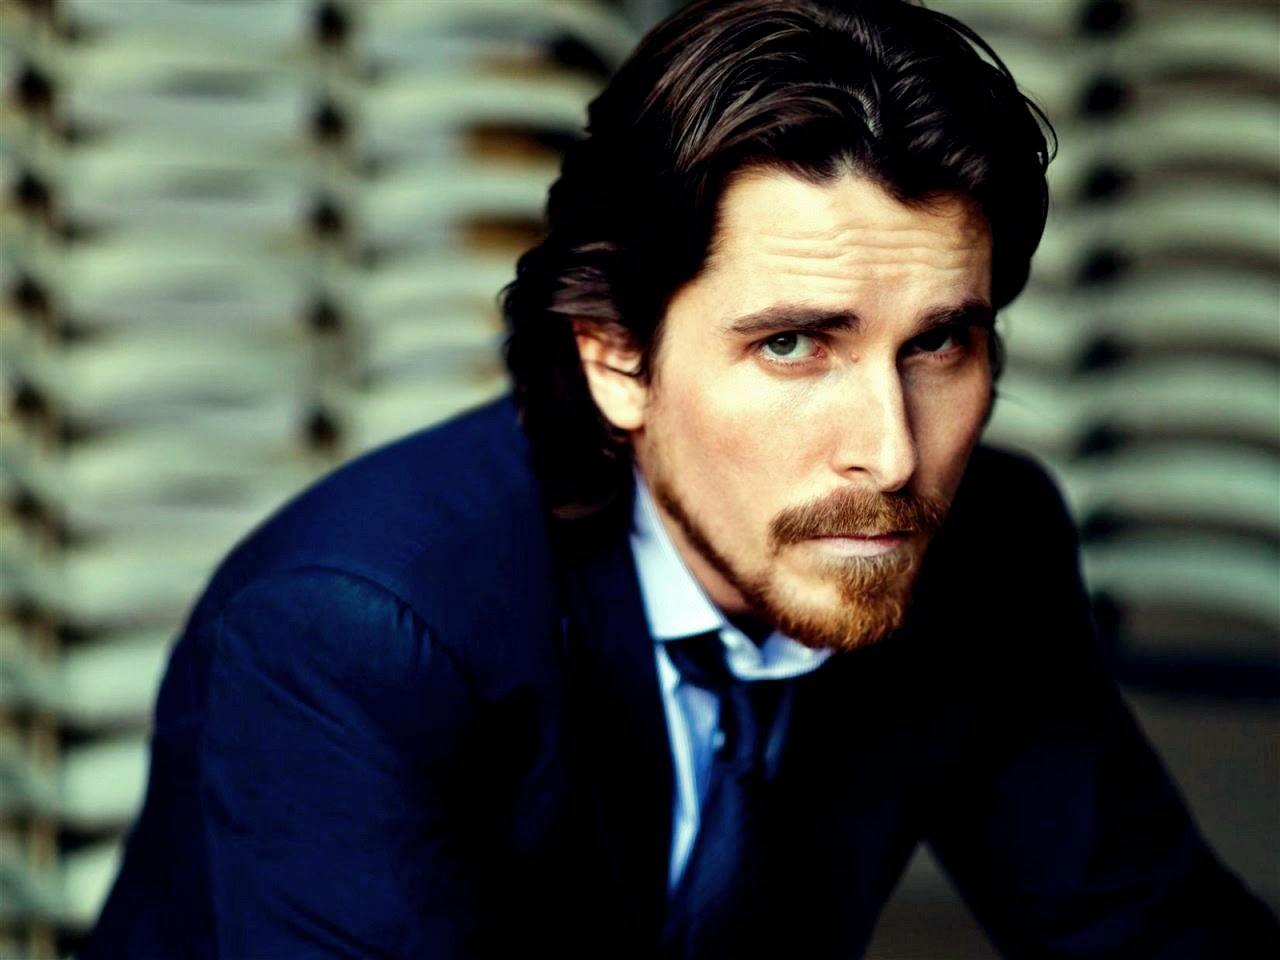 Christian Bale se desvincula del biopic de Steve Jobs. MÁS CINE. Making Of. Noticias